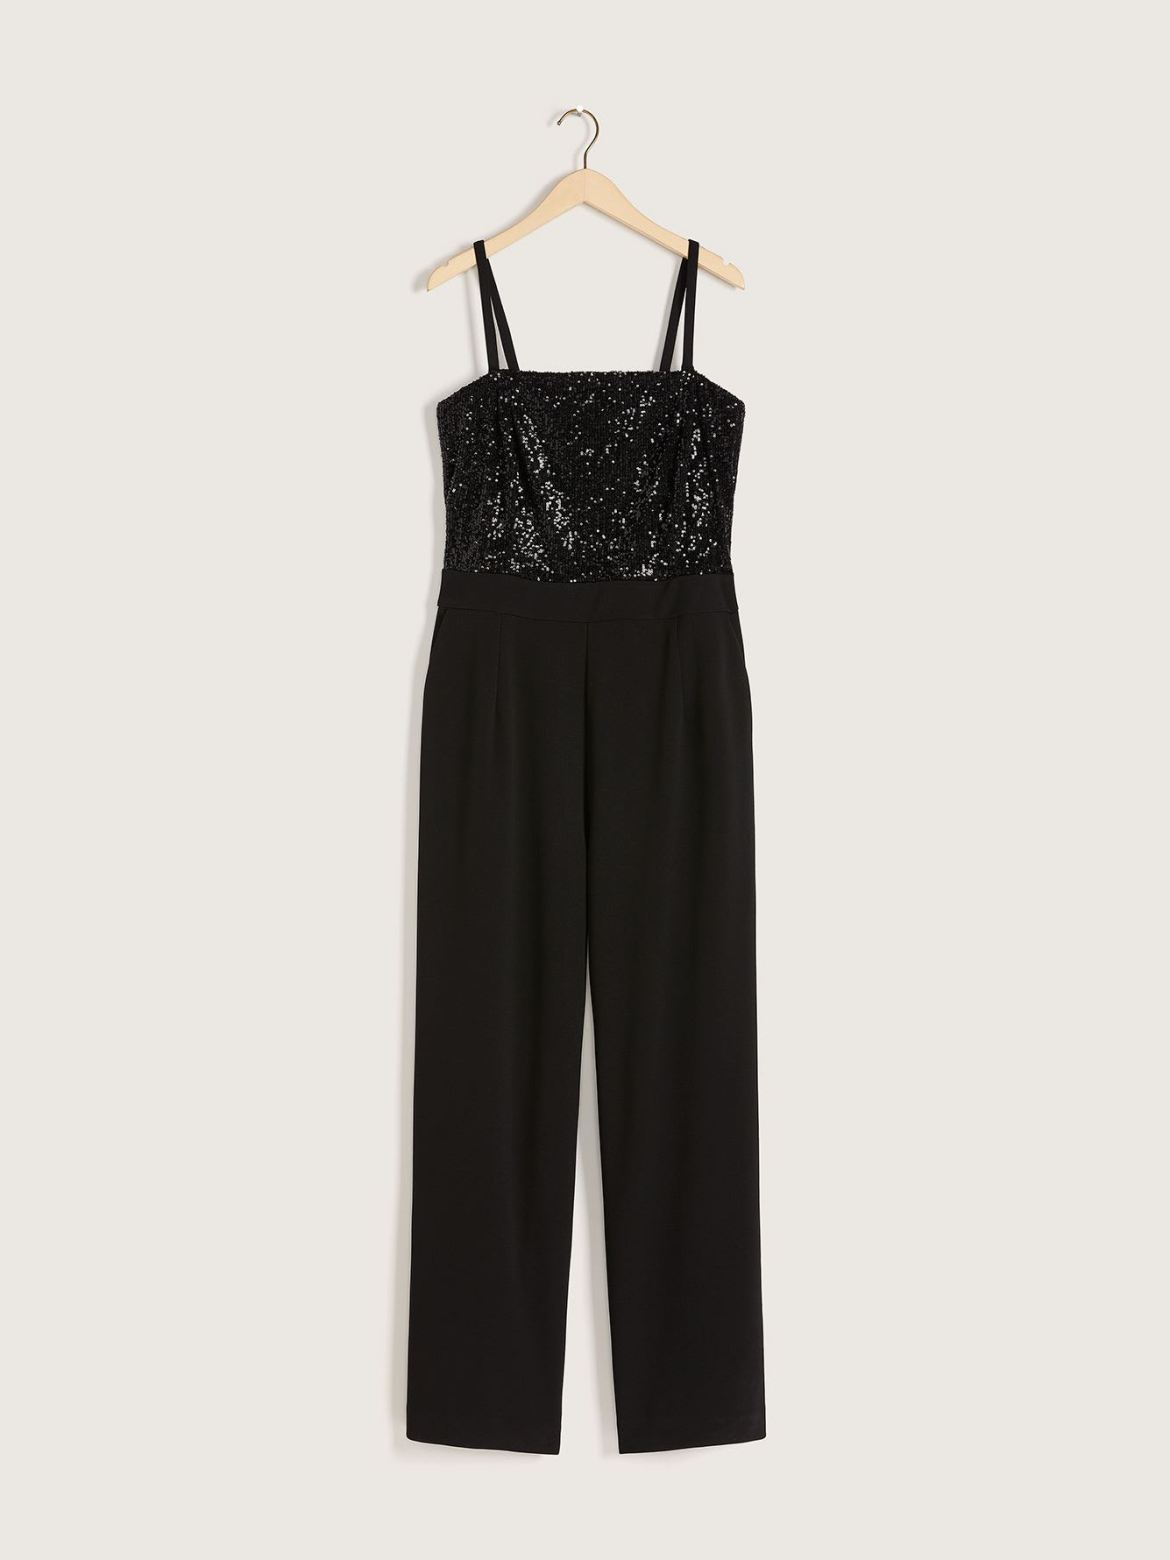 Strapless Sequin Jumpsuit - Christian Siriano